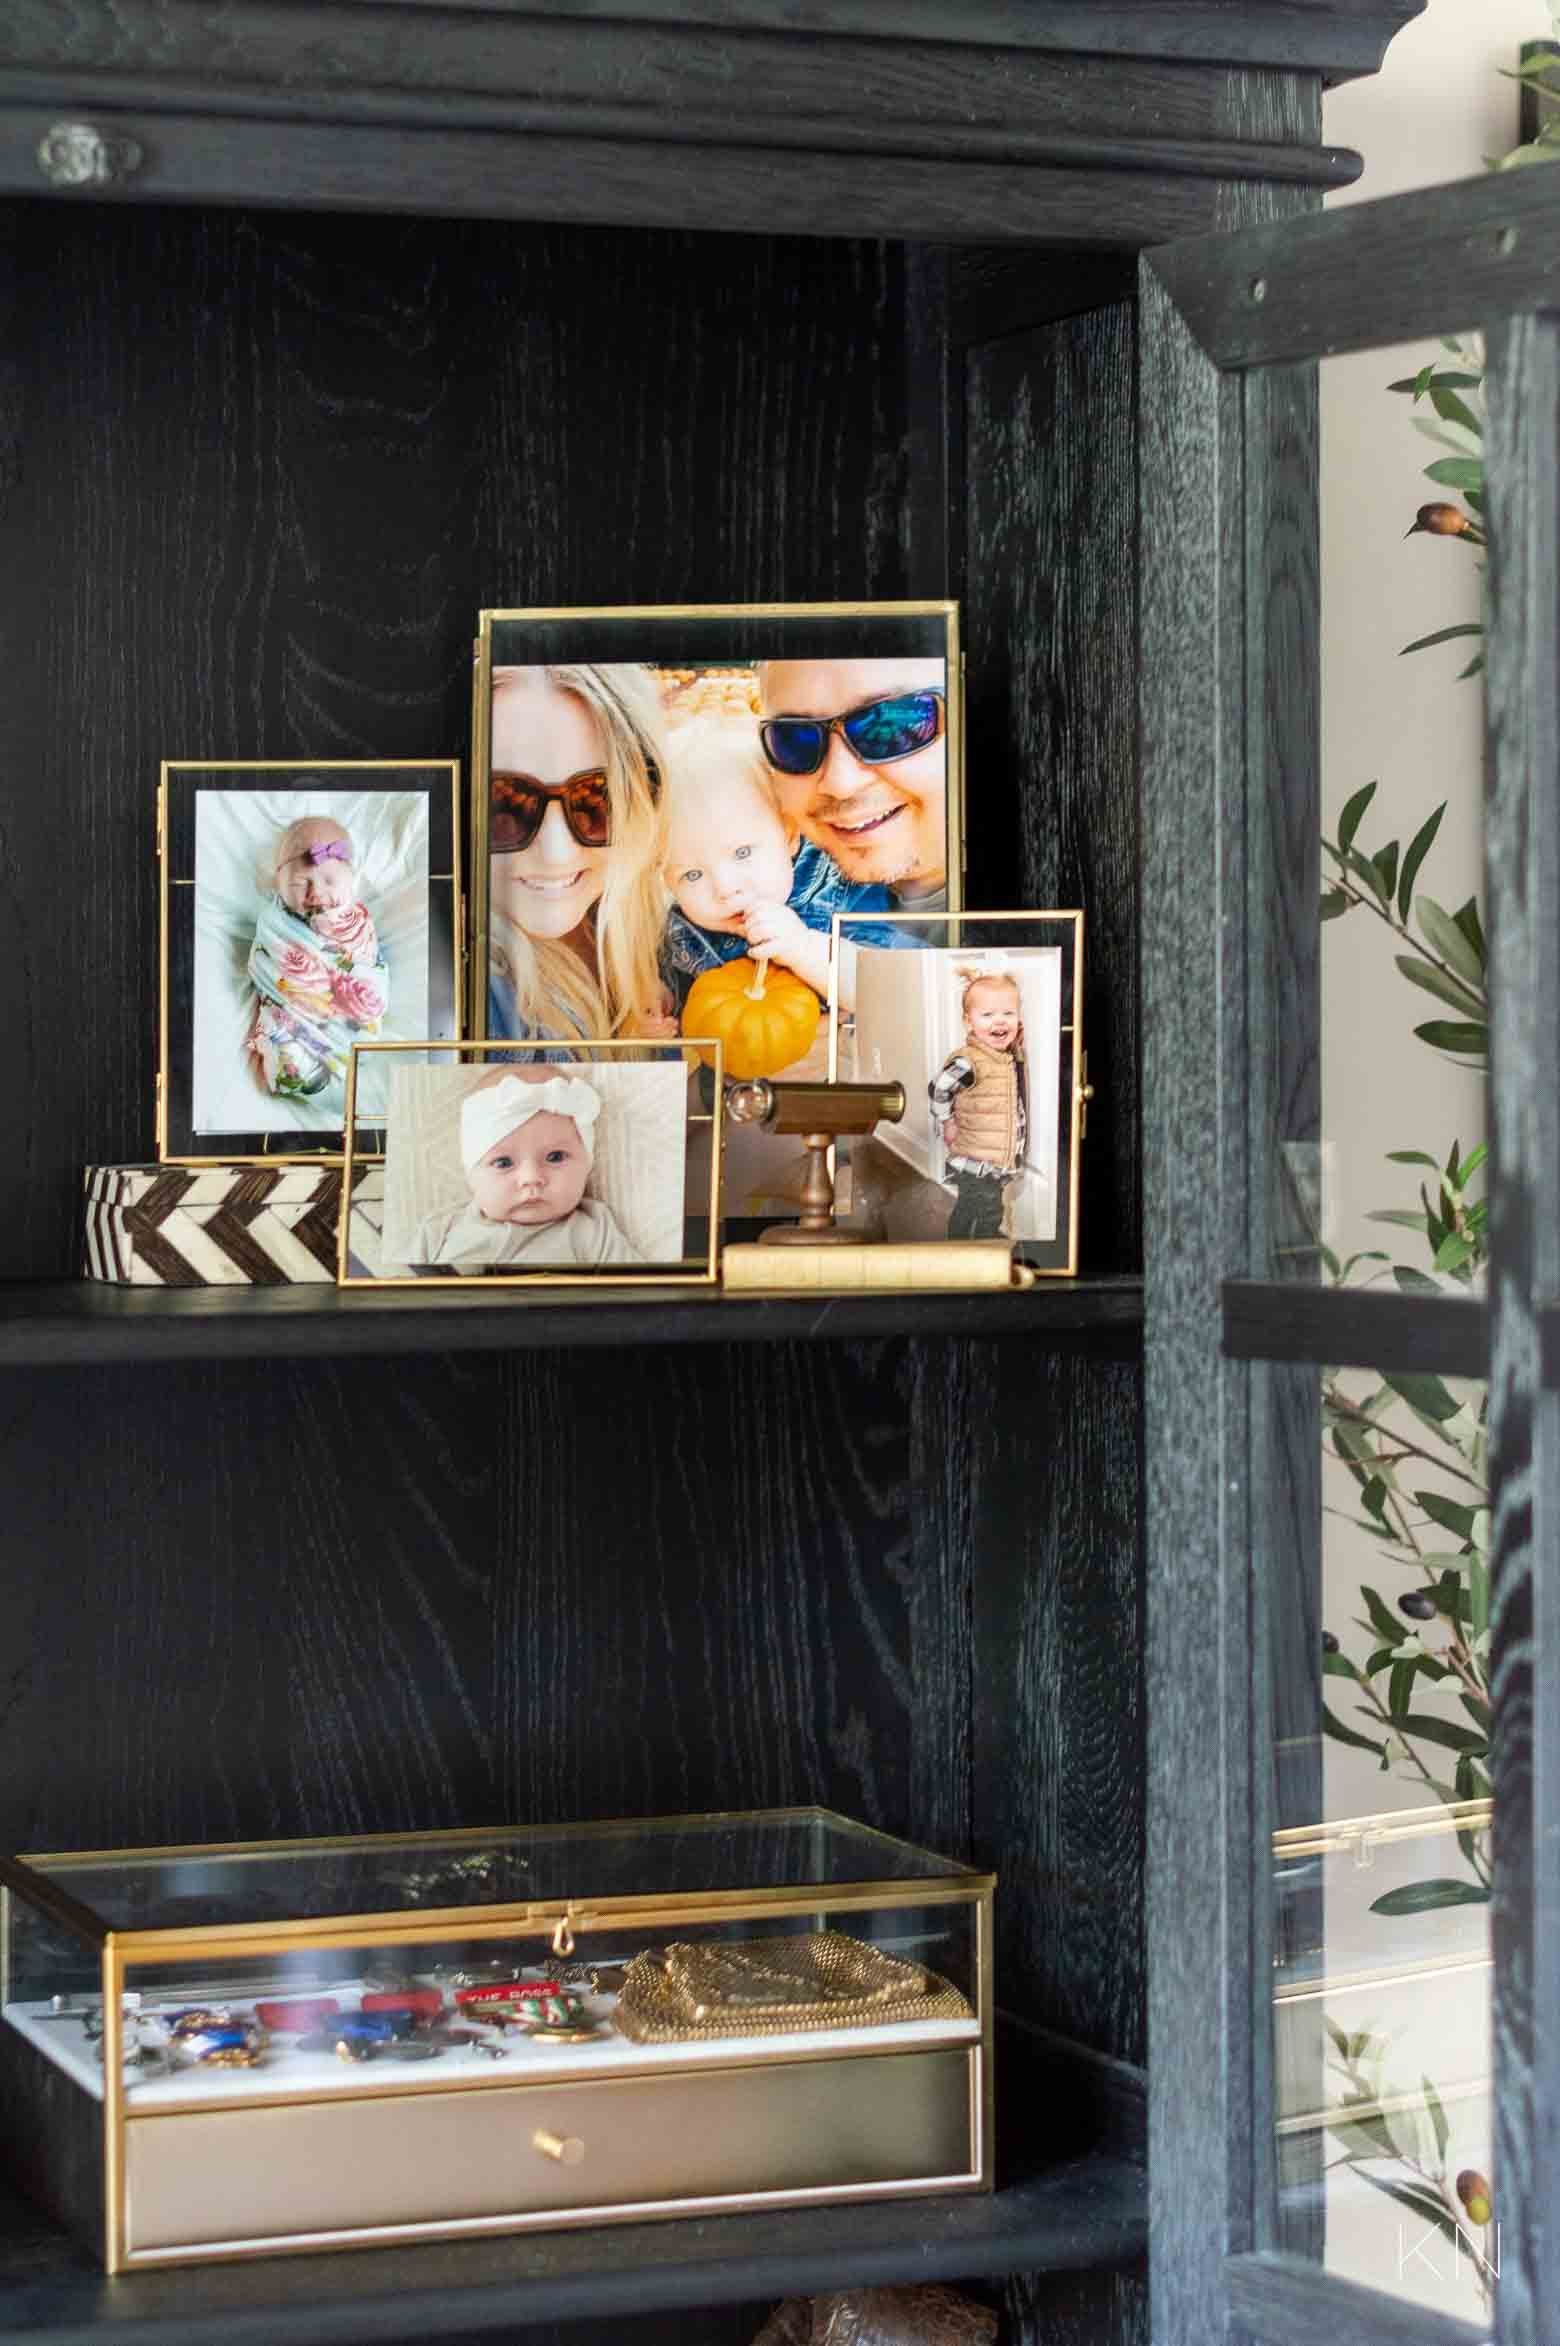 How to Style a Glass Door Cabinet with Special and Sentimental Items